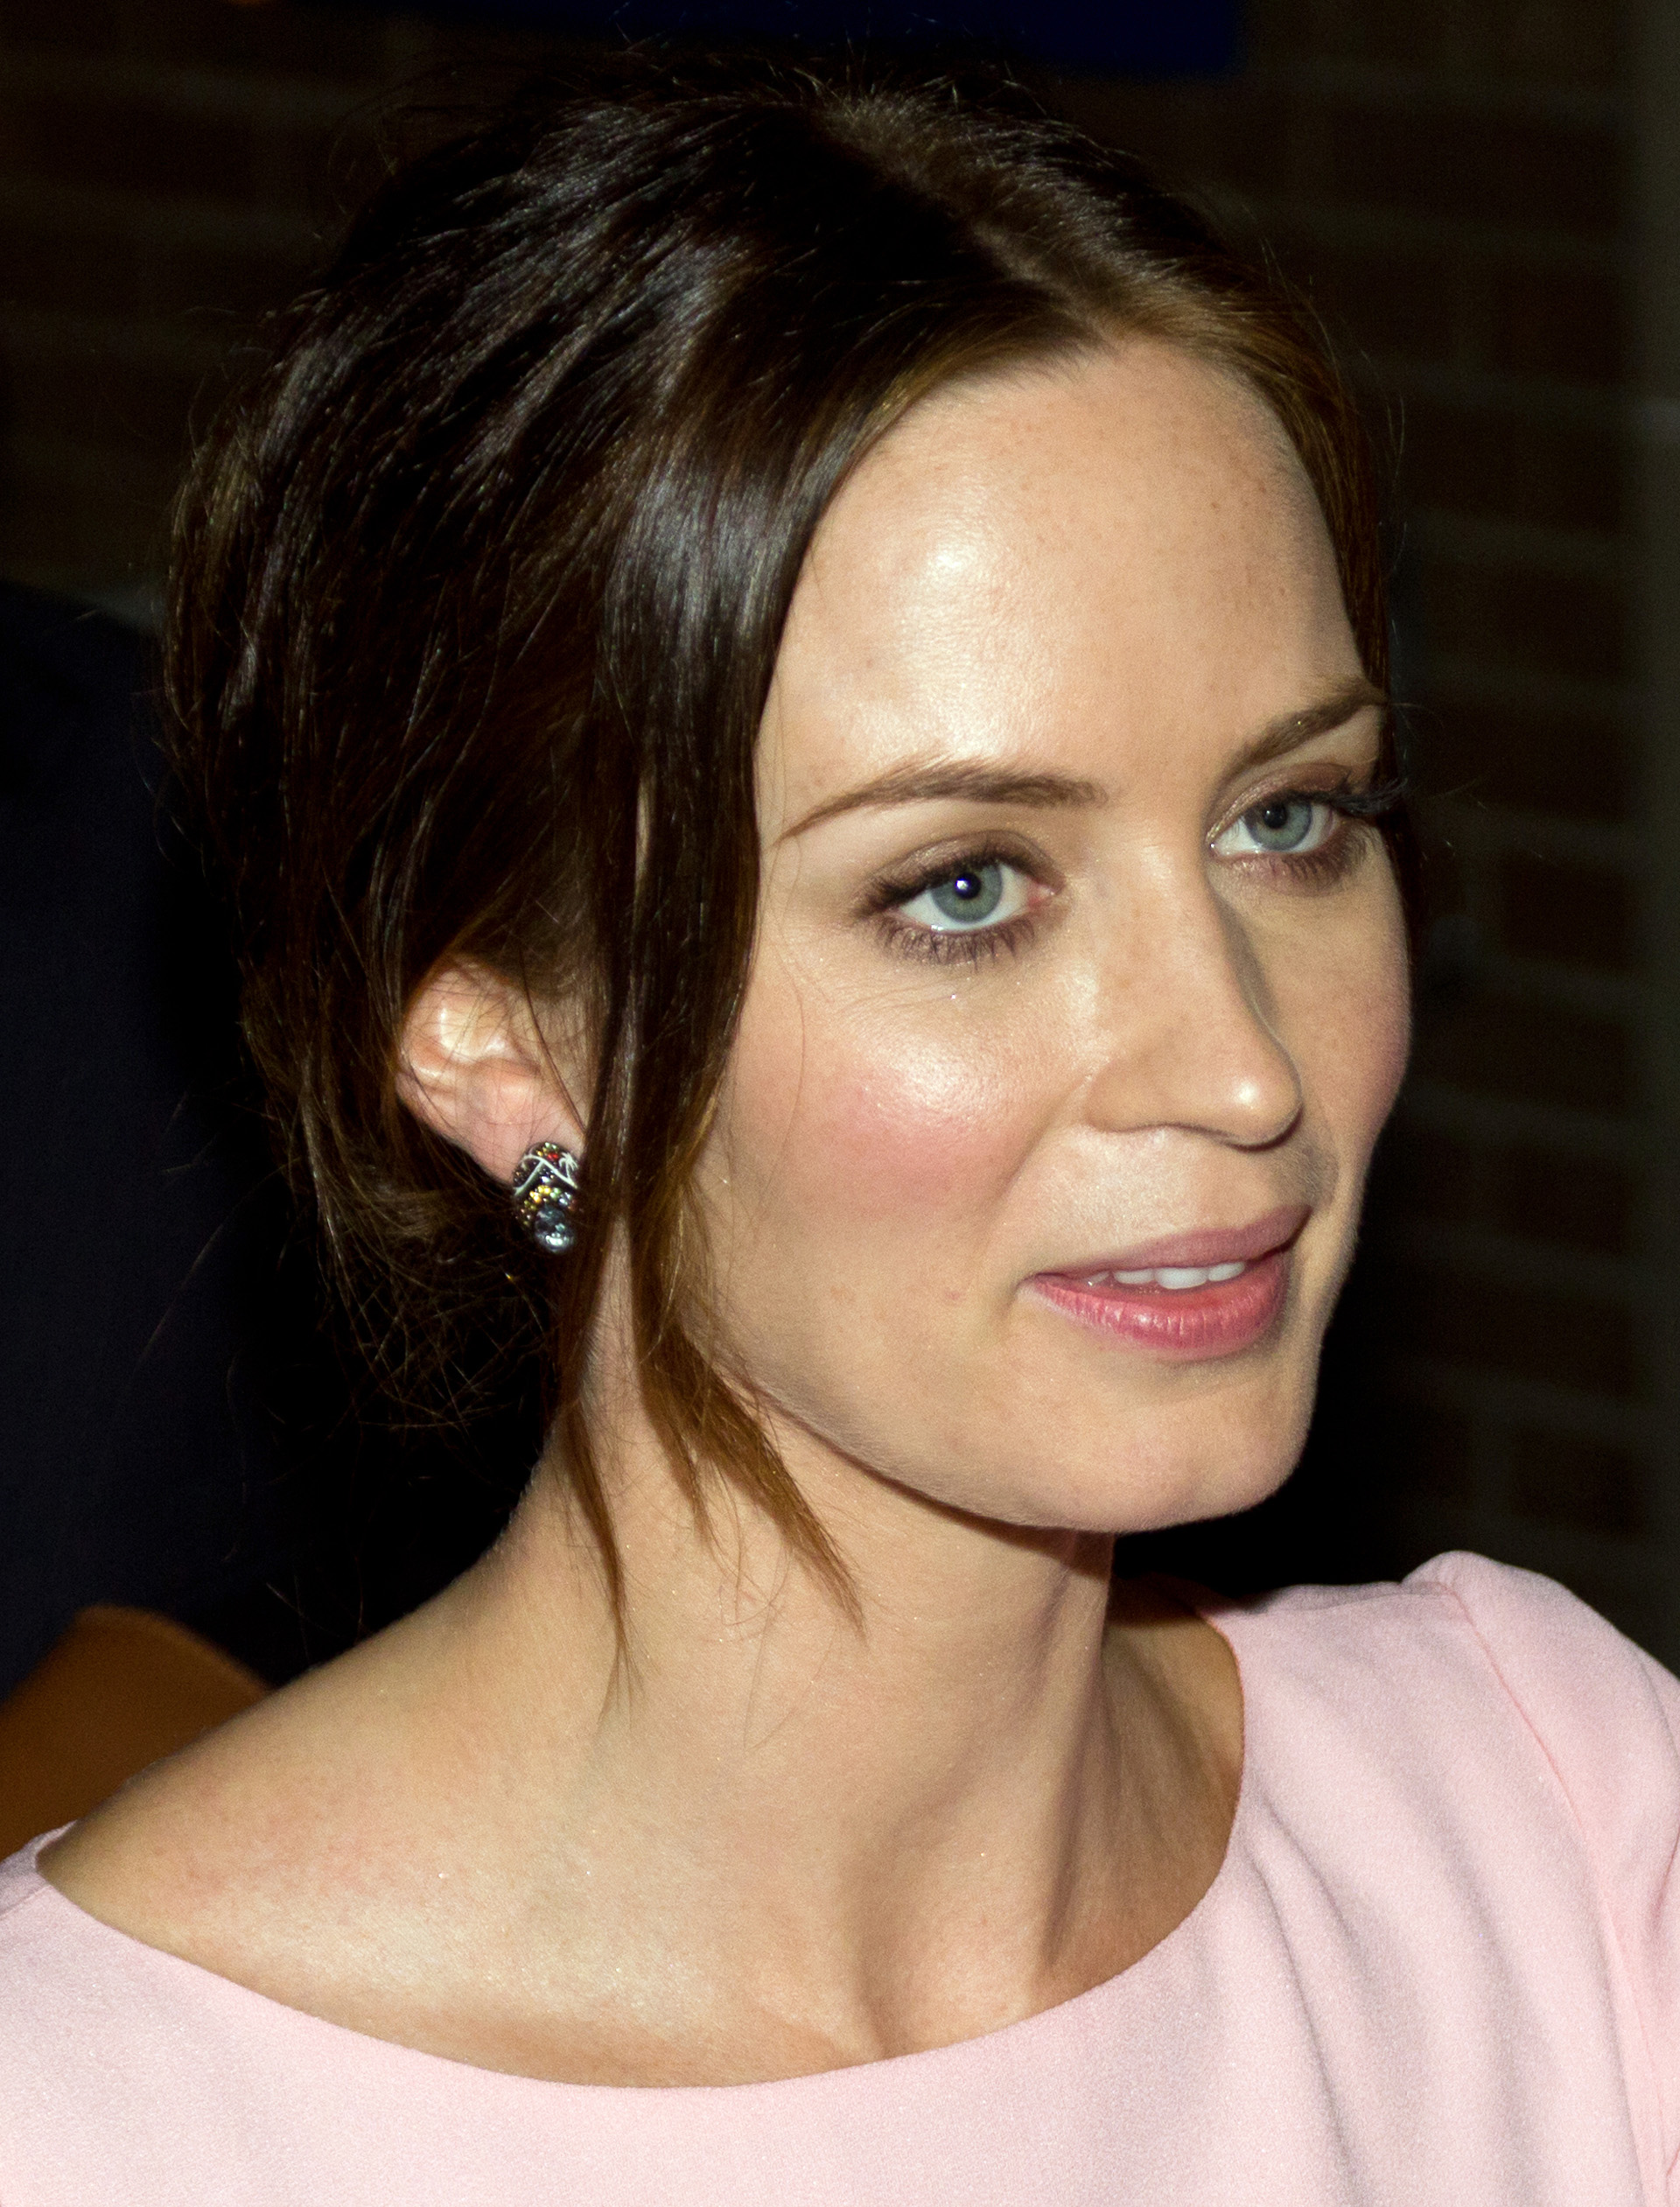 Description Emily Blunt TIFF 2011.jpg Emily Blunt